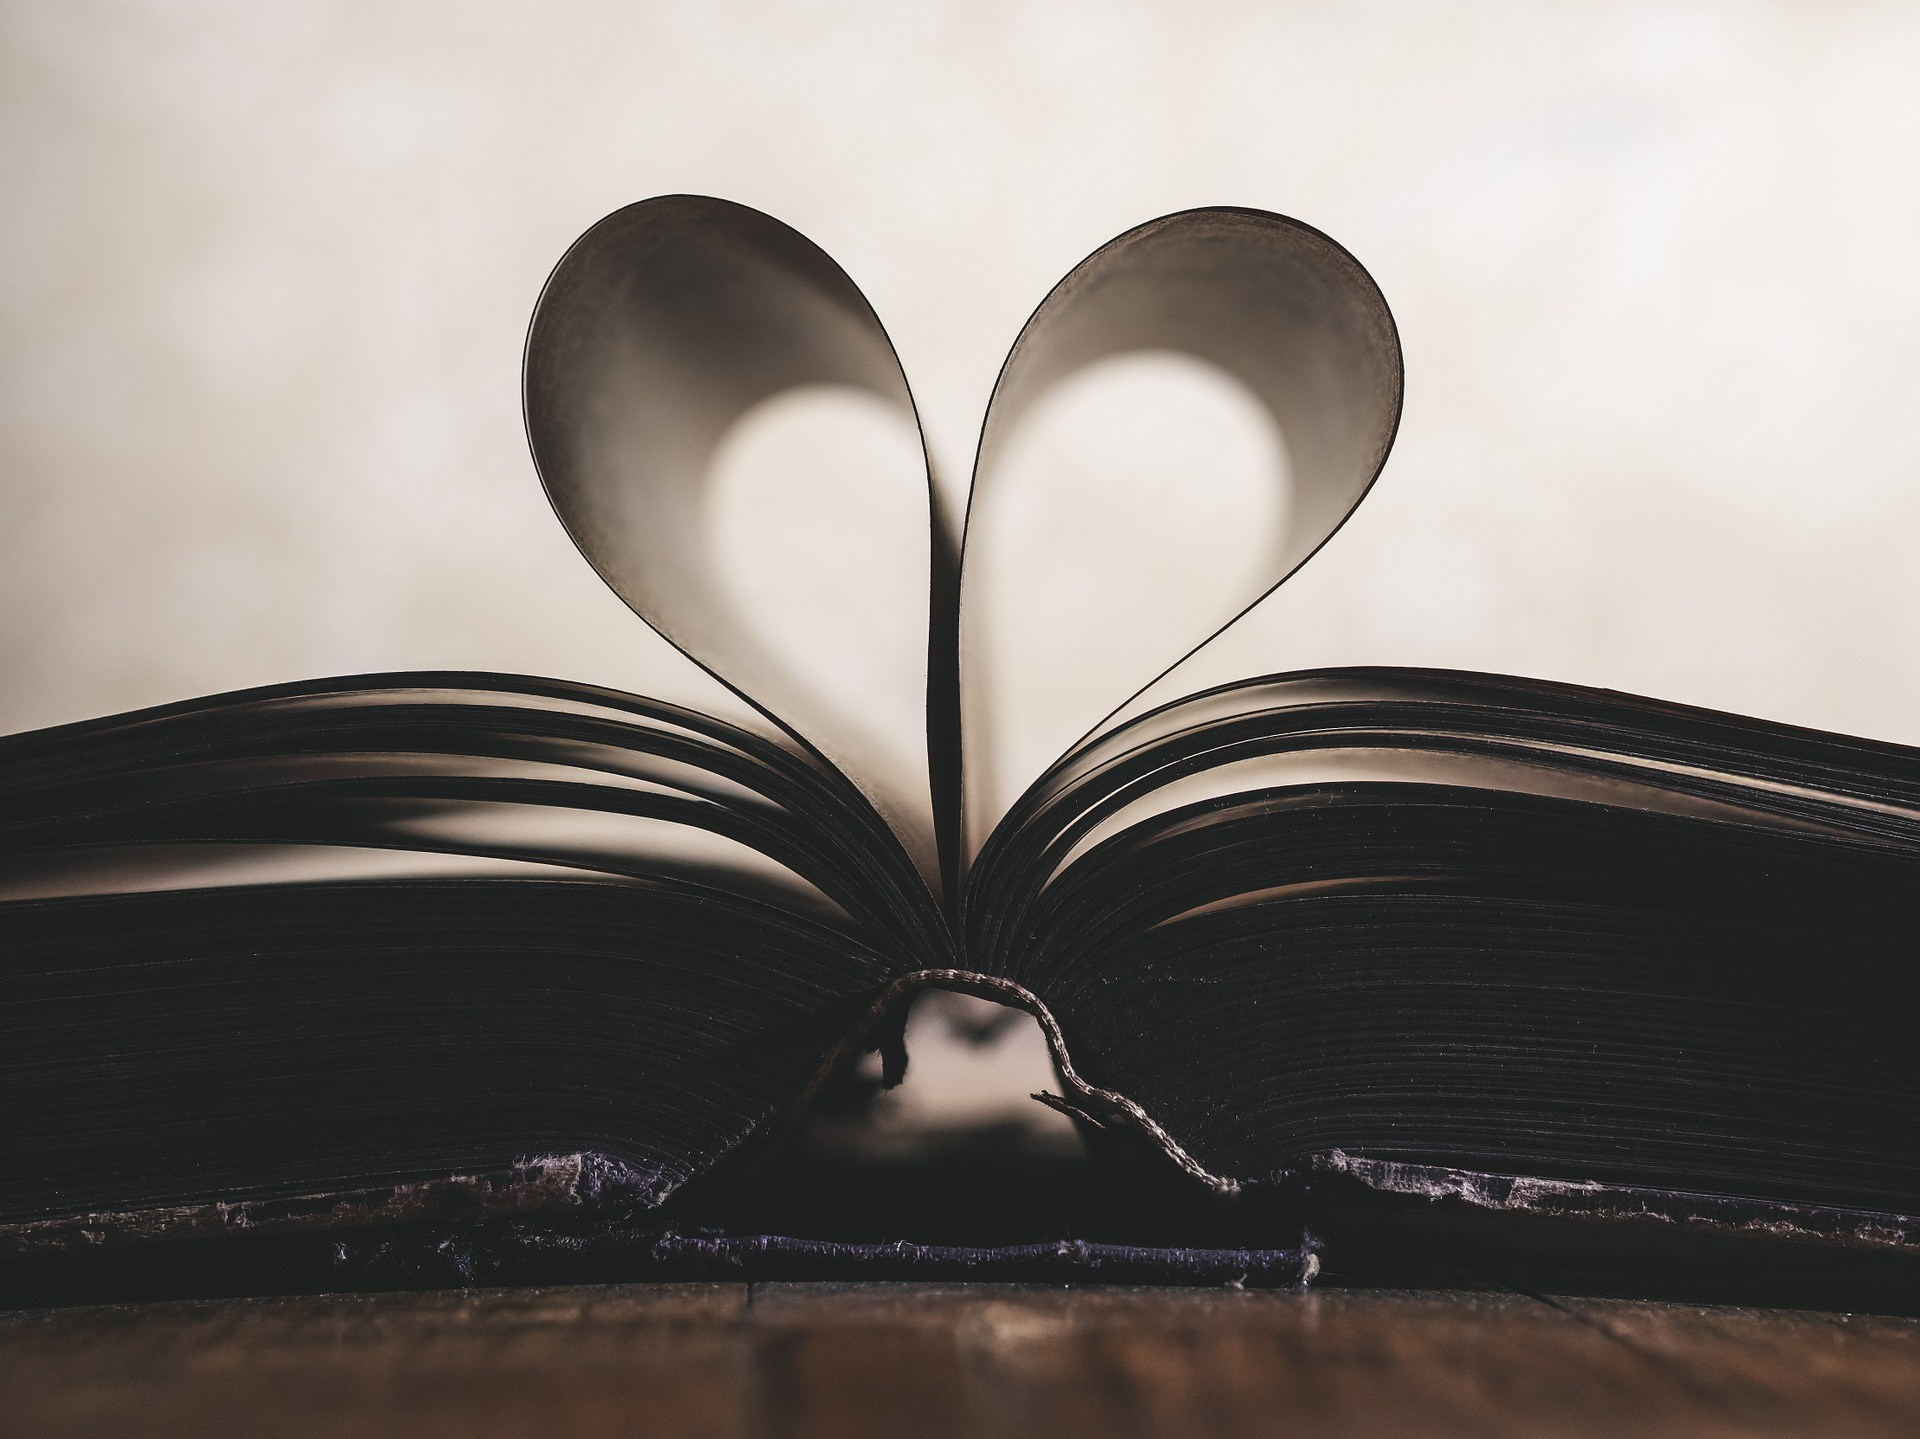 A closeup of the spine of a book with the pages folded to look like a love heart